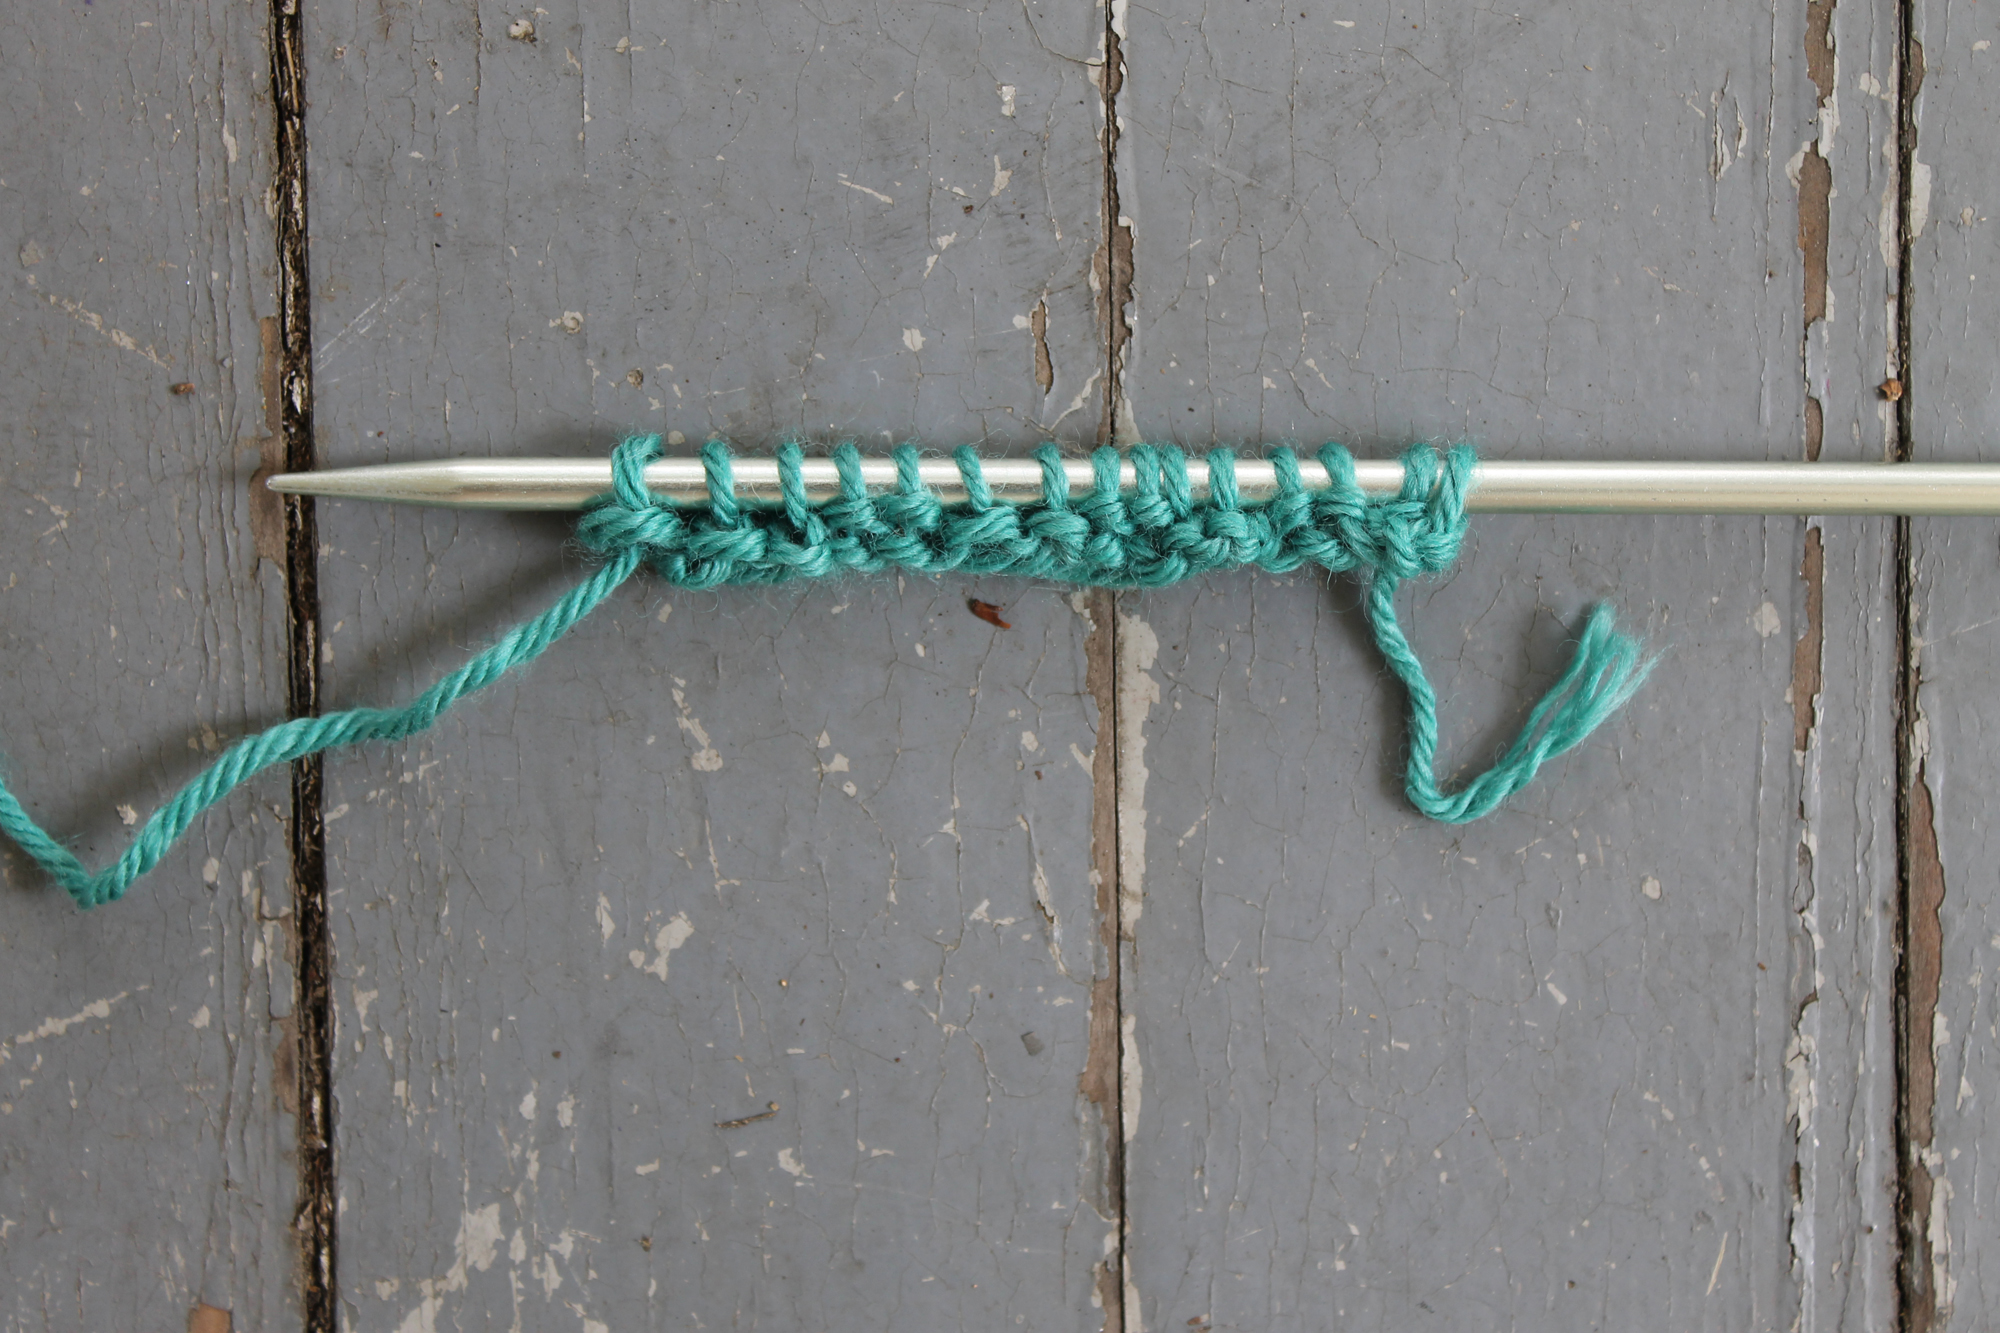 First completed row of the mistake rib stitch